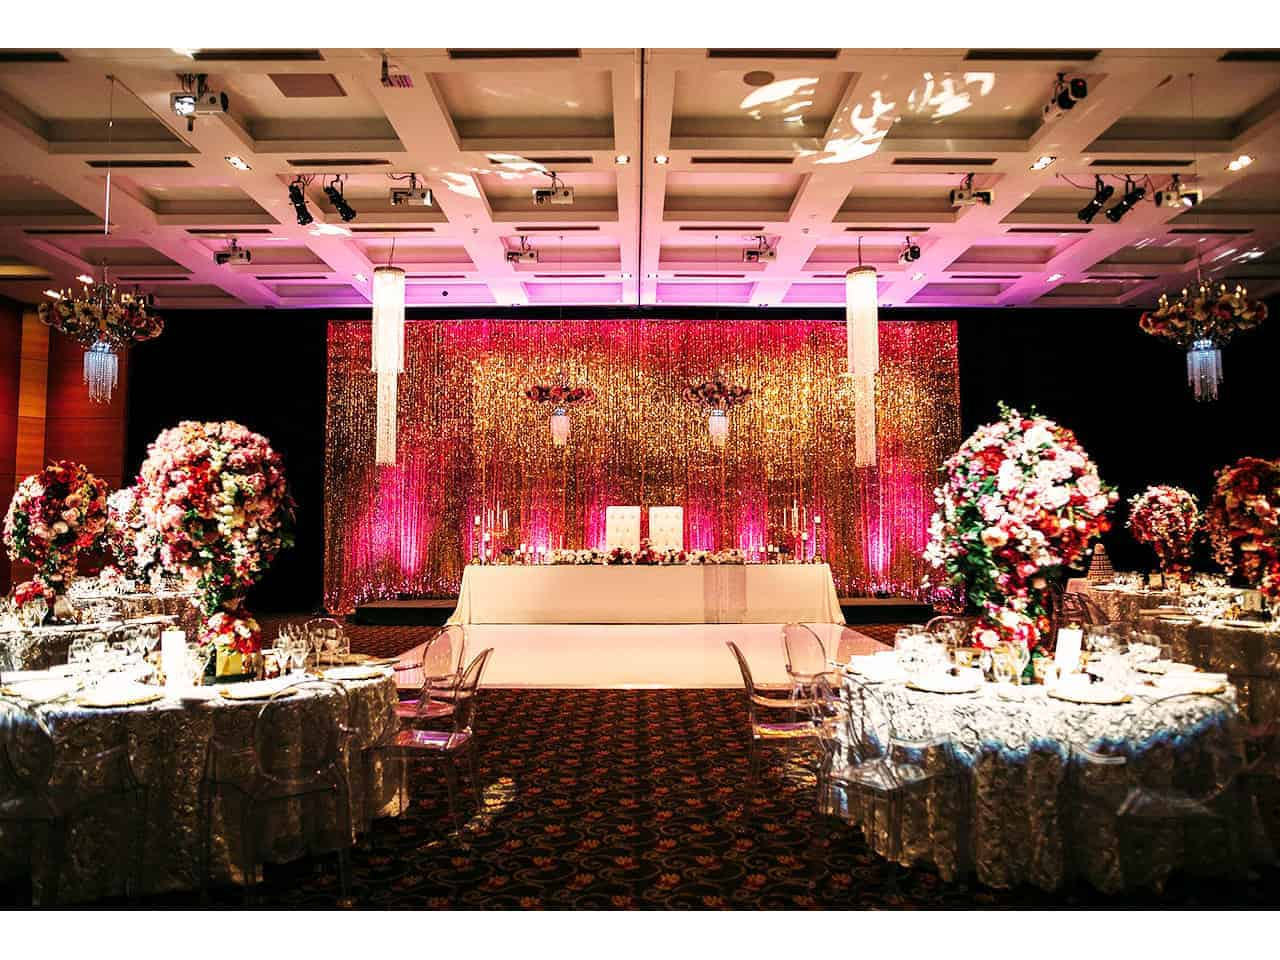 Large venue for events